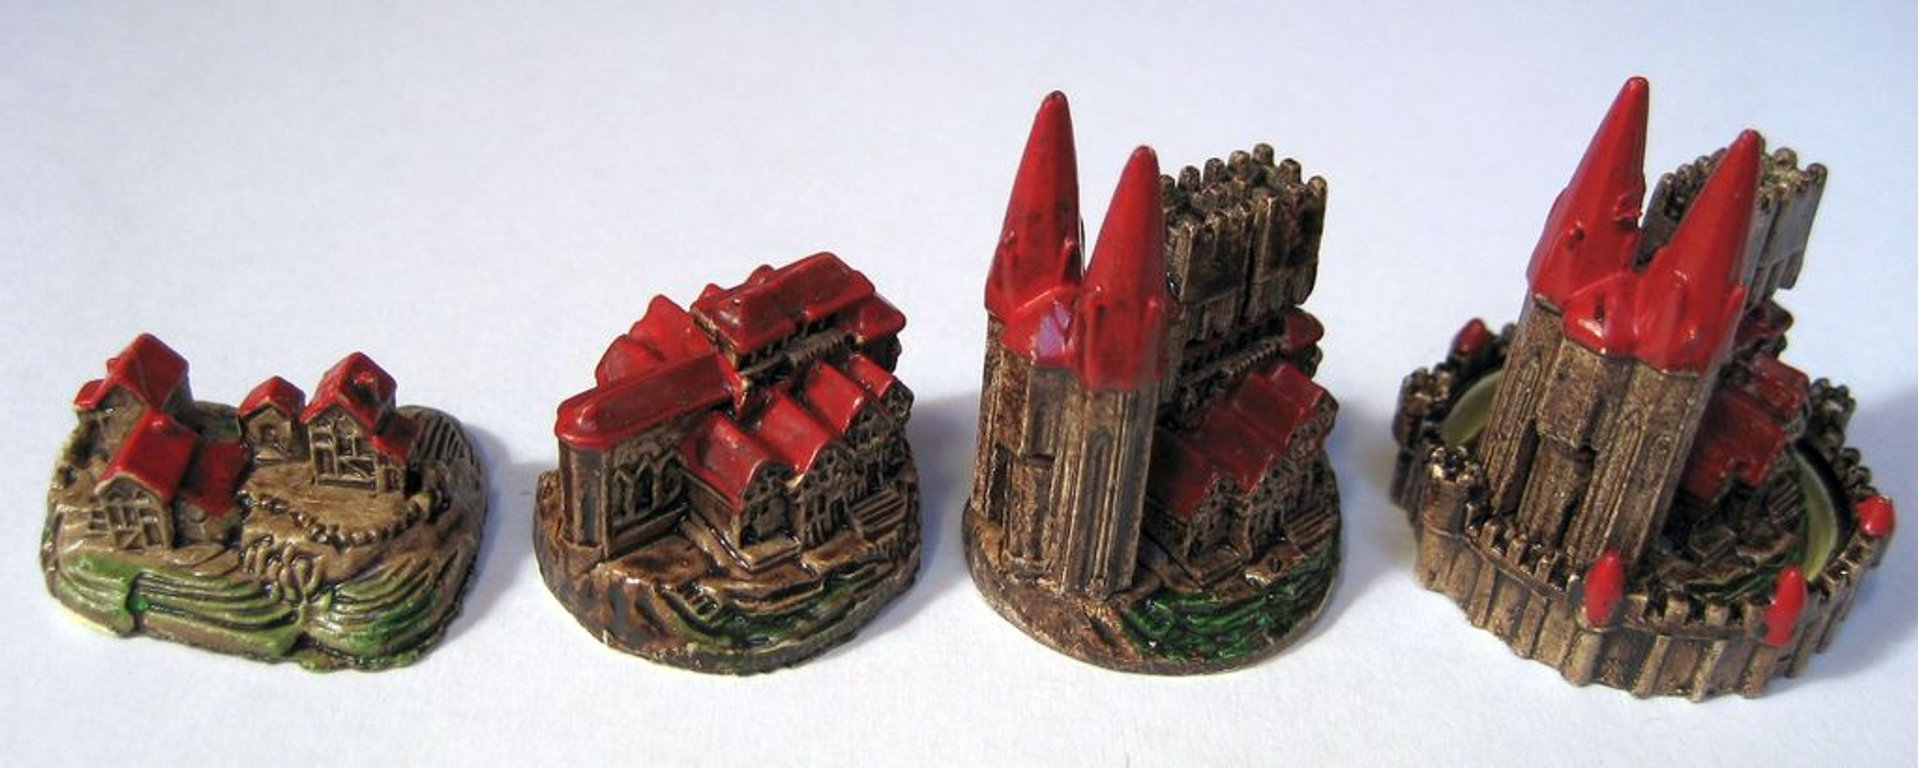 CATAN 3D Collector's Edition components